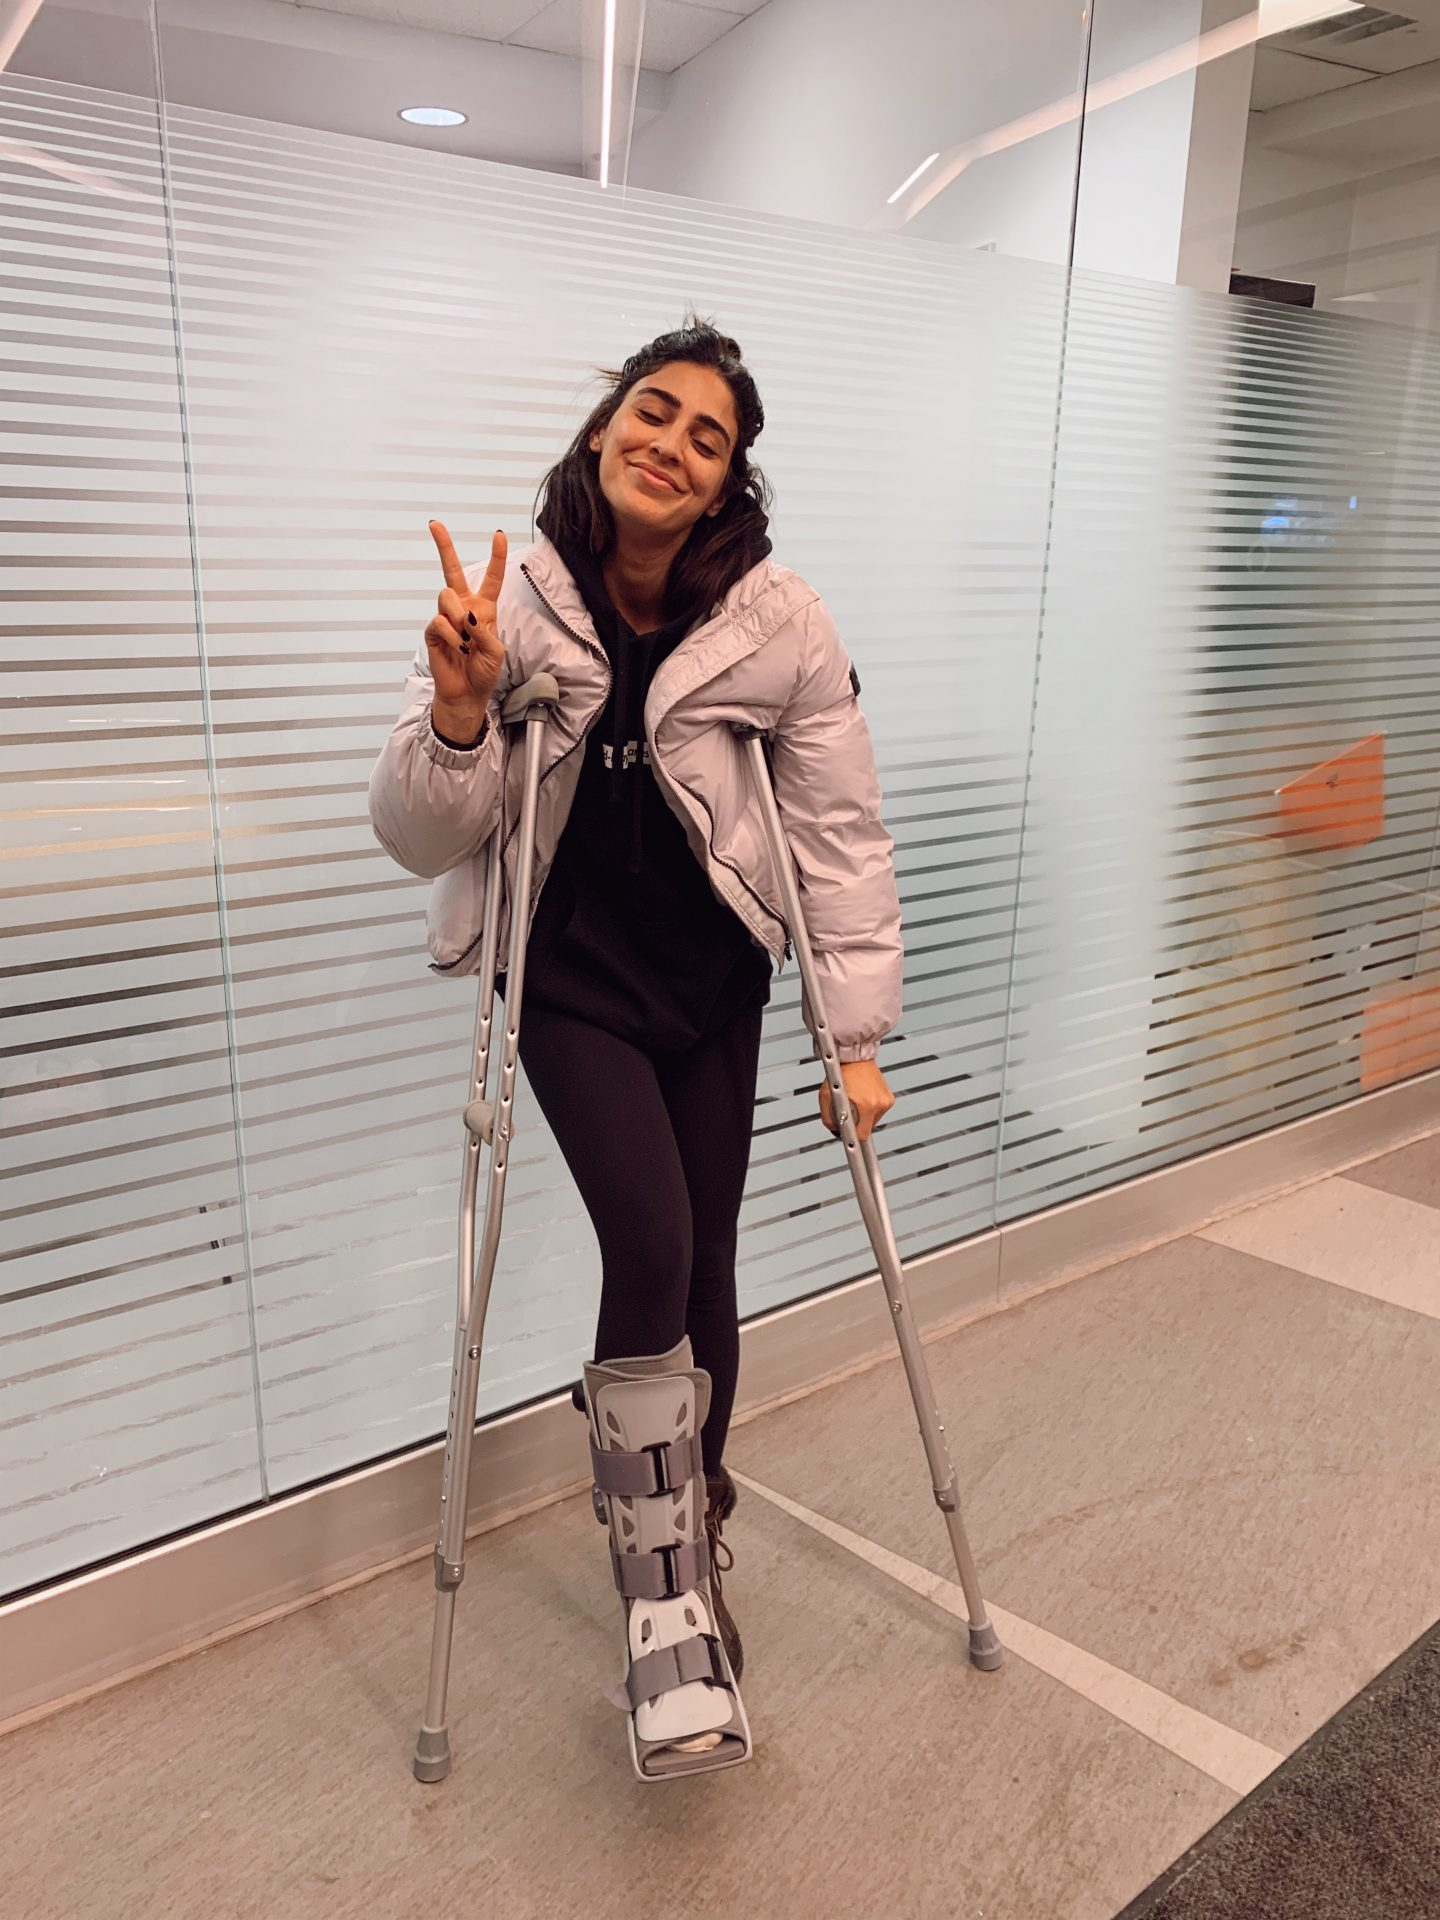 A woman poses with a broken ankle wearing a walking boot and using crutches